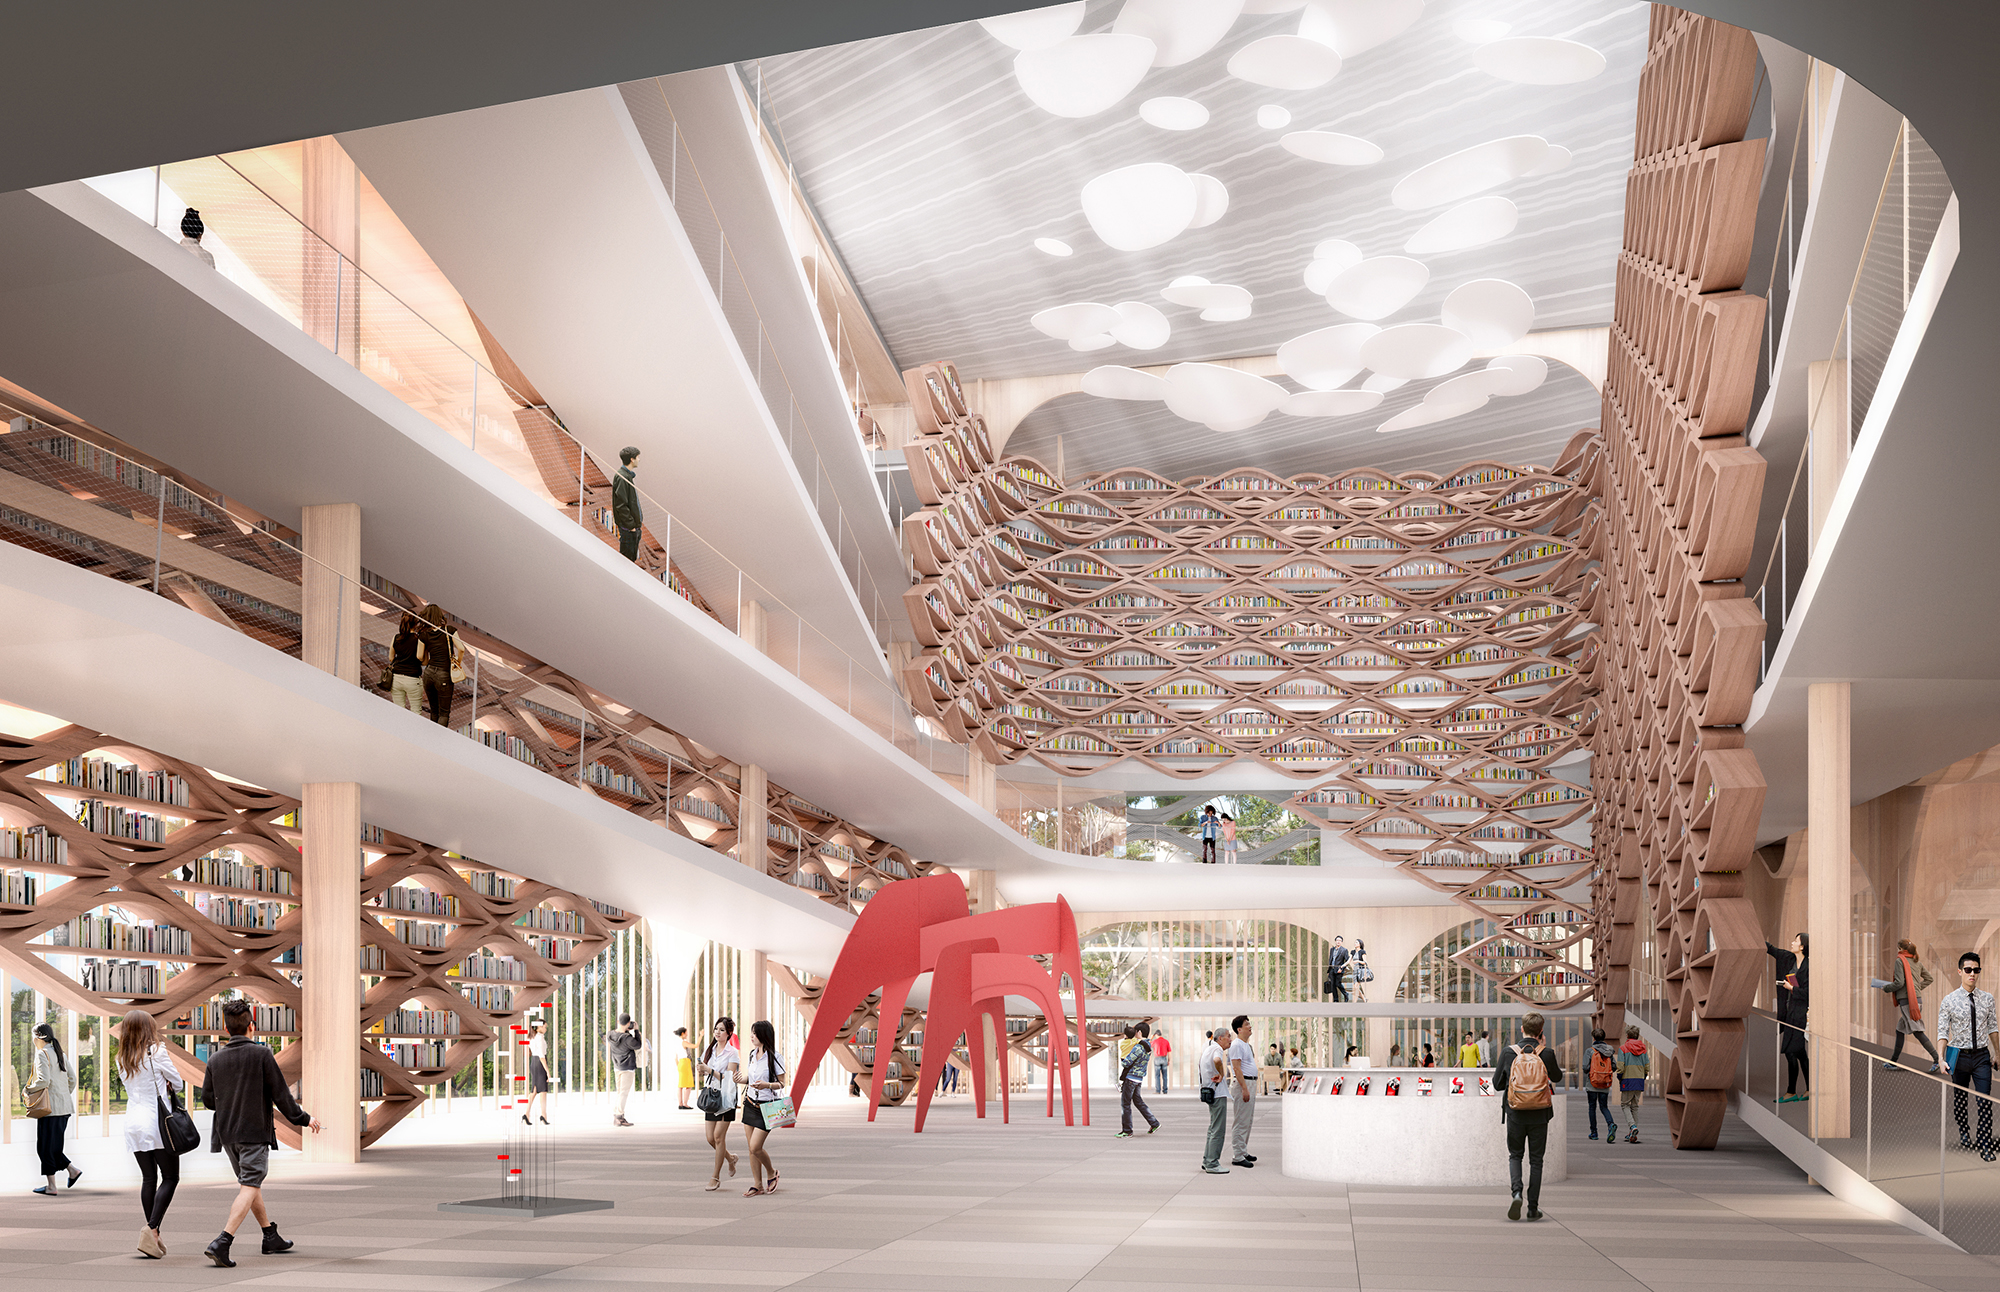 Songdo Library Competition Entry / Manuel A. Monteserín Lahoz